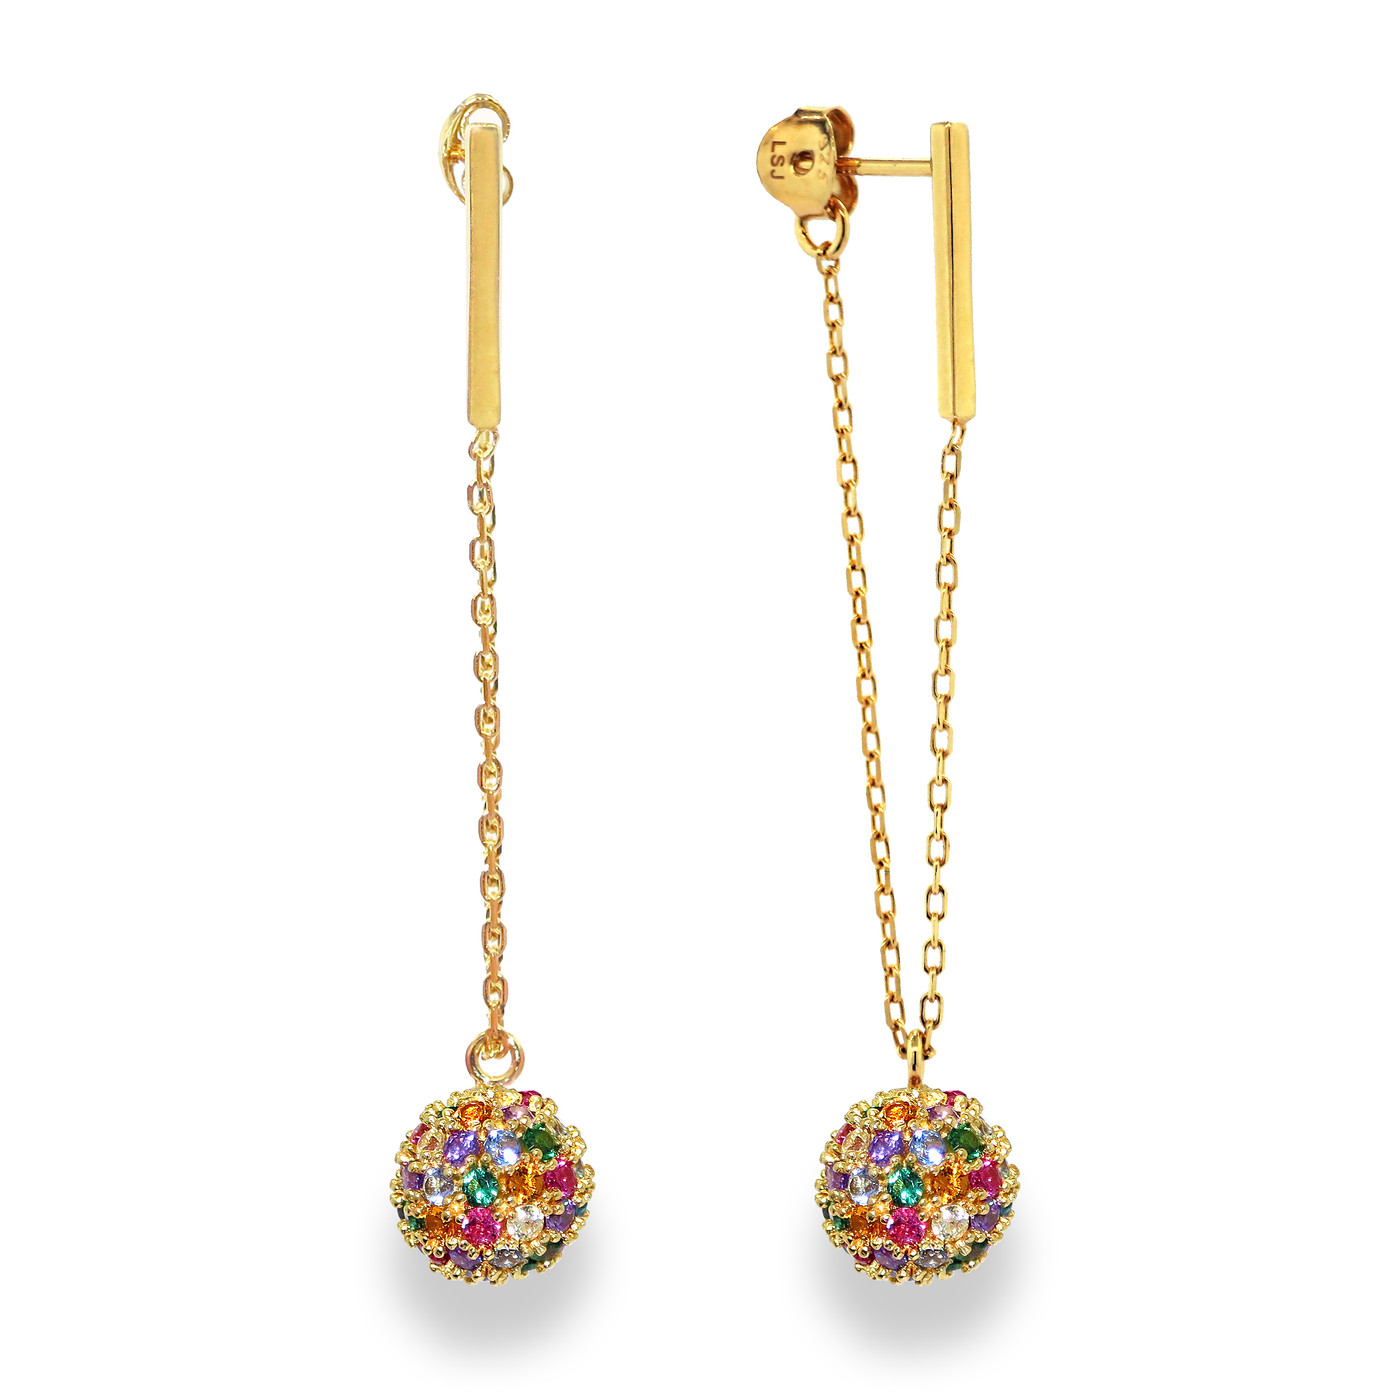 18K Gold over Sterling Silver Rainbow Champagne Drop Earrings